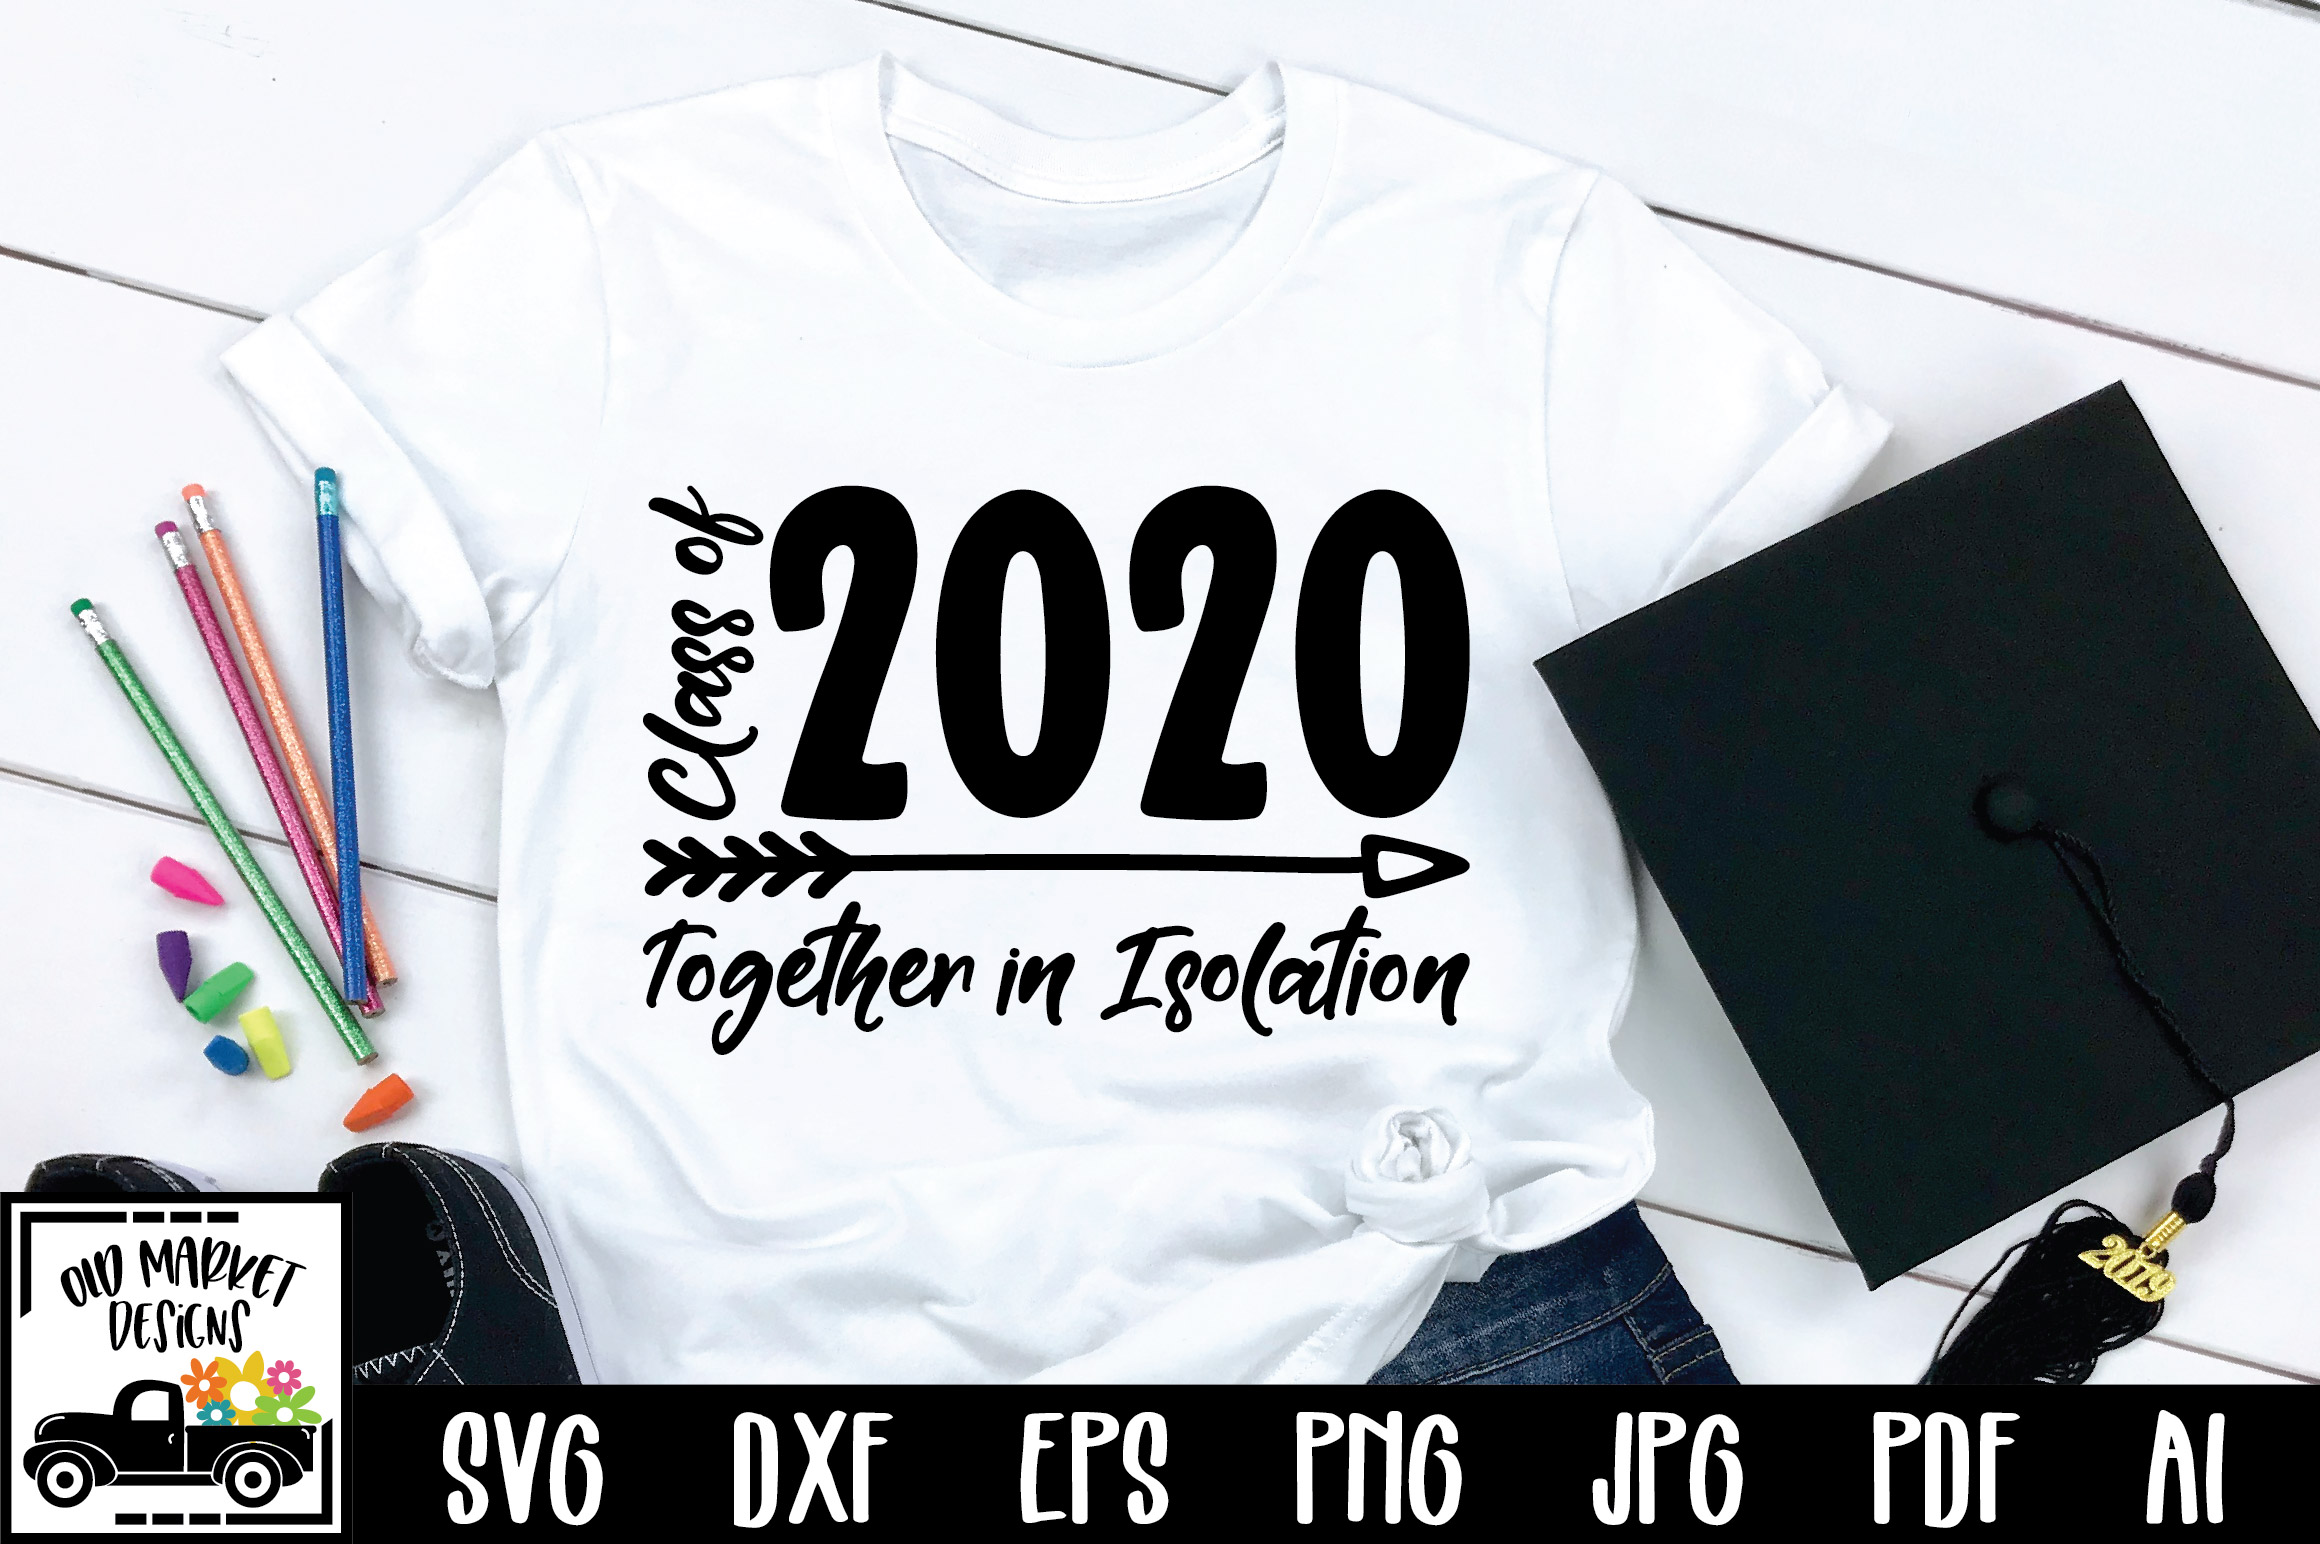 Download Free Class Of 2020 Together In Isolation Graphic By Oldmarketdesigns for Cricut Explore, Silhouette and other cutting machines.